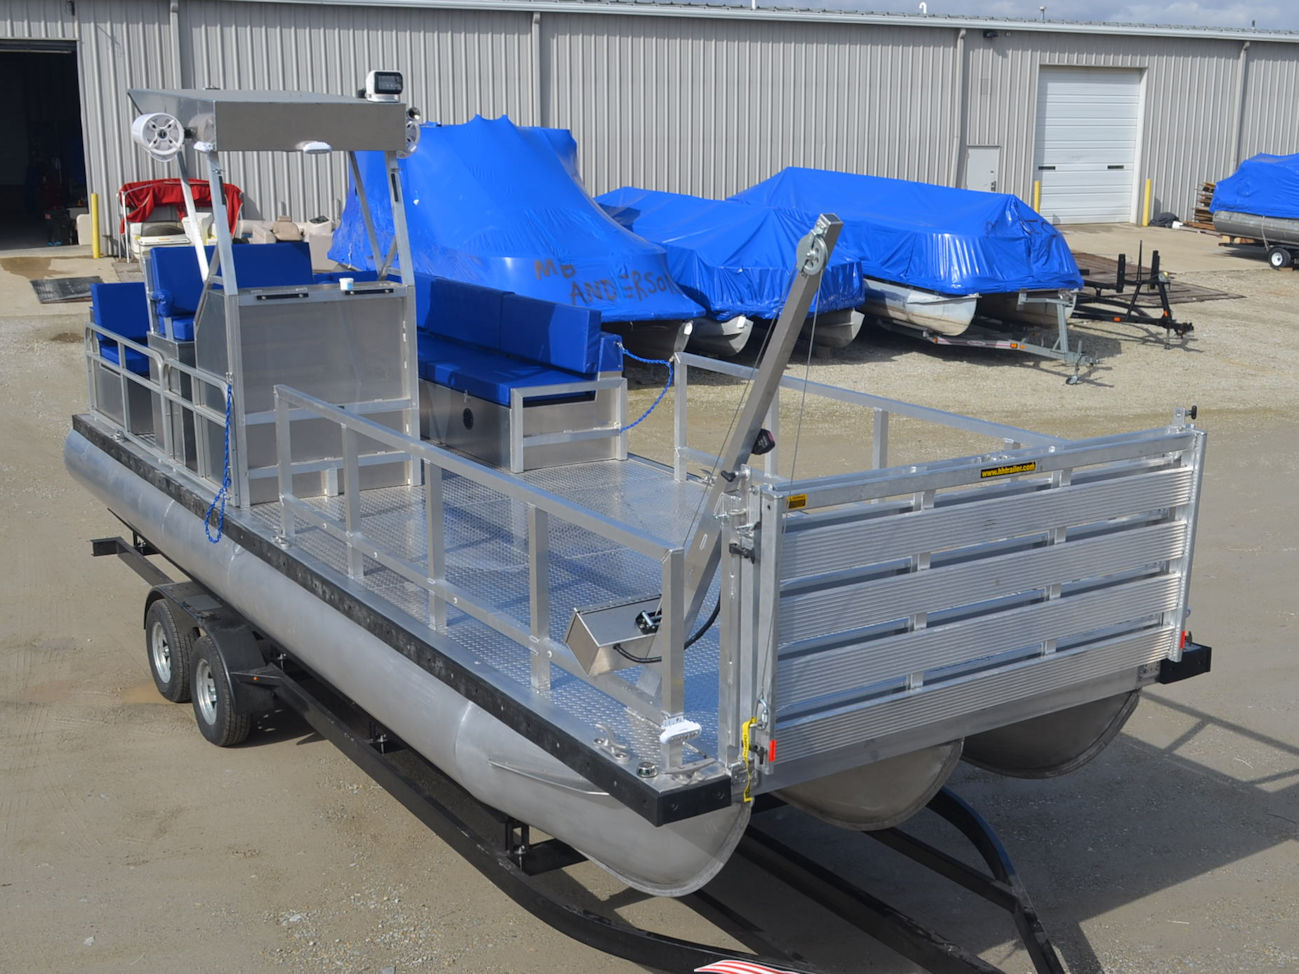 PONTOON USED EQUIPMENT